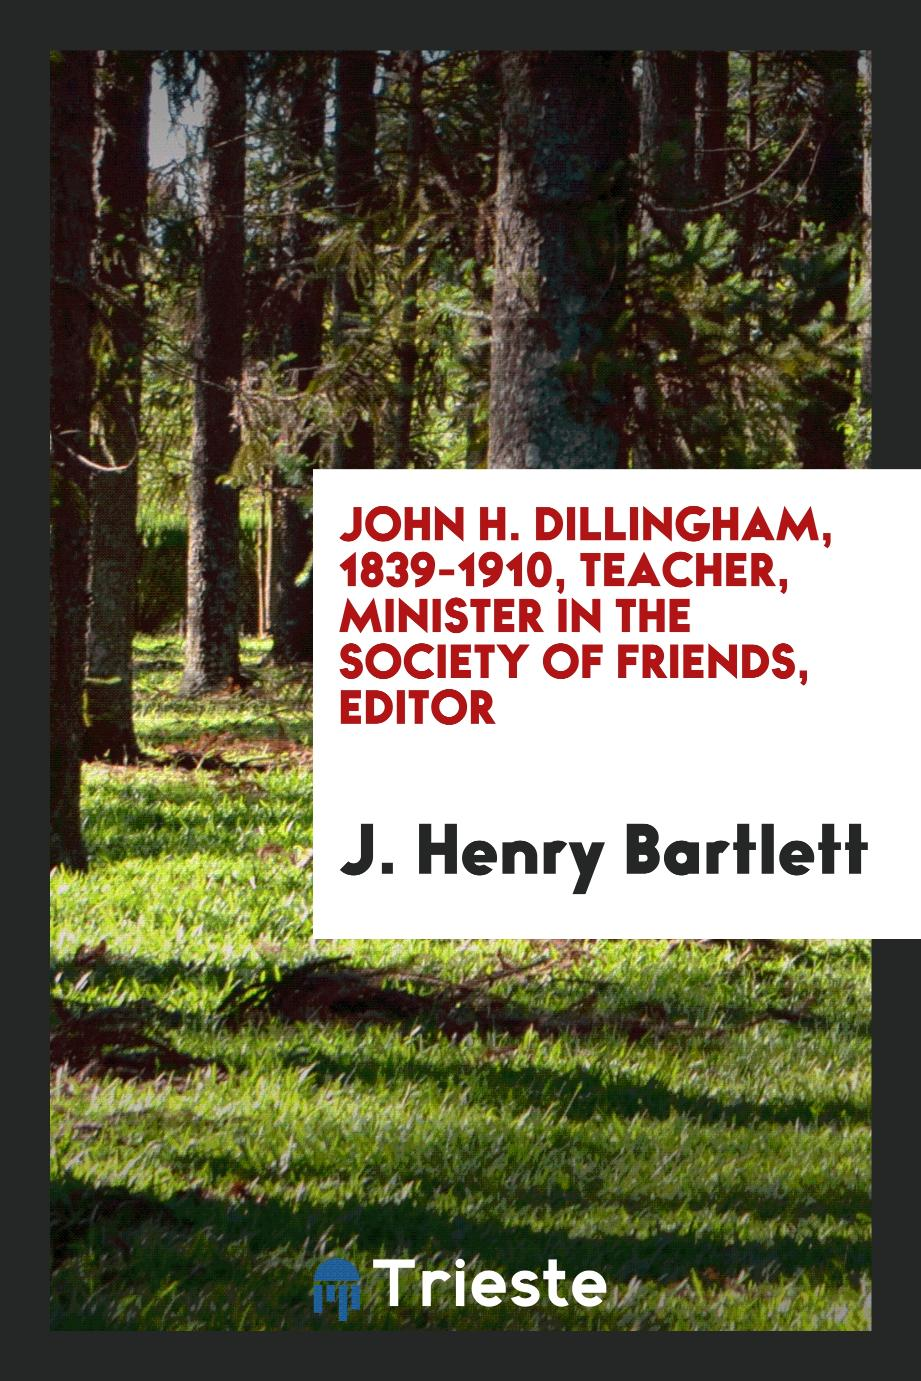 John H. Dillingham, 1839-1910, teacher, minister in the Society of Friends, editor